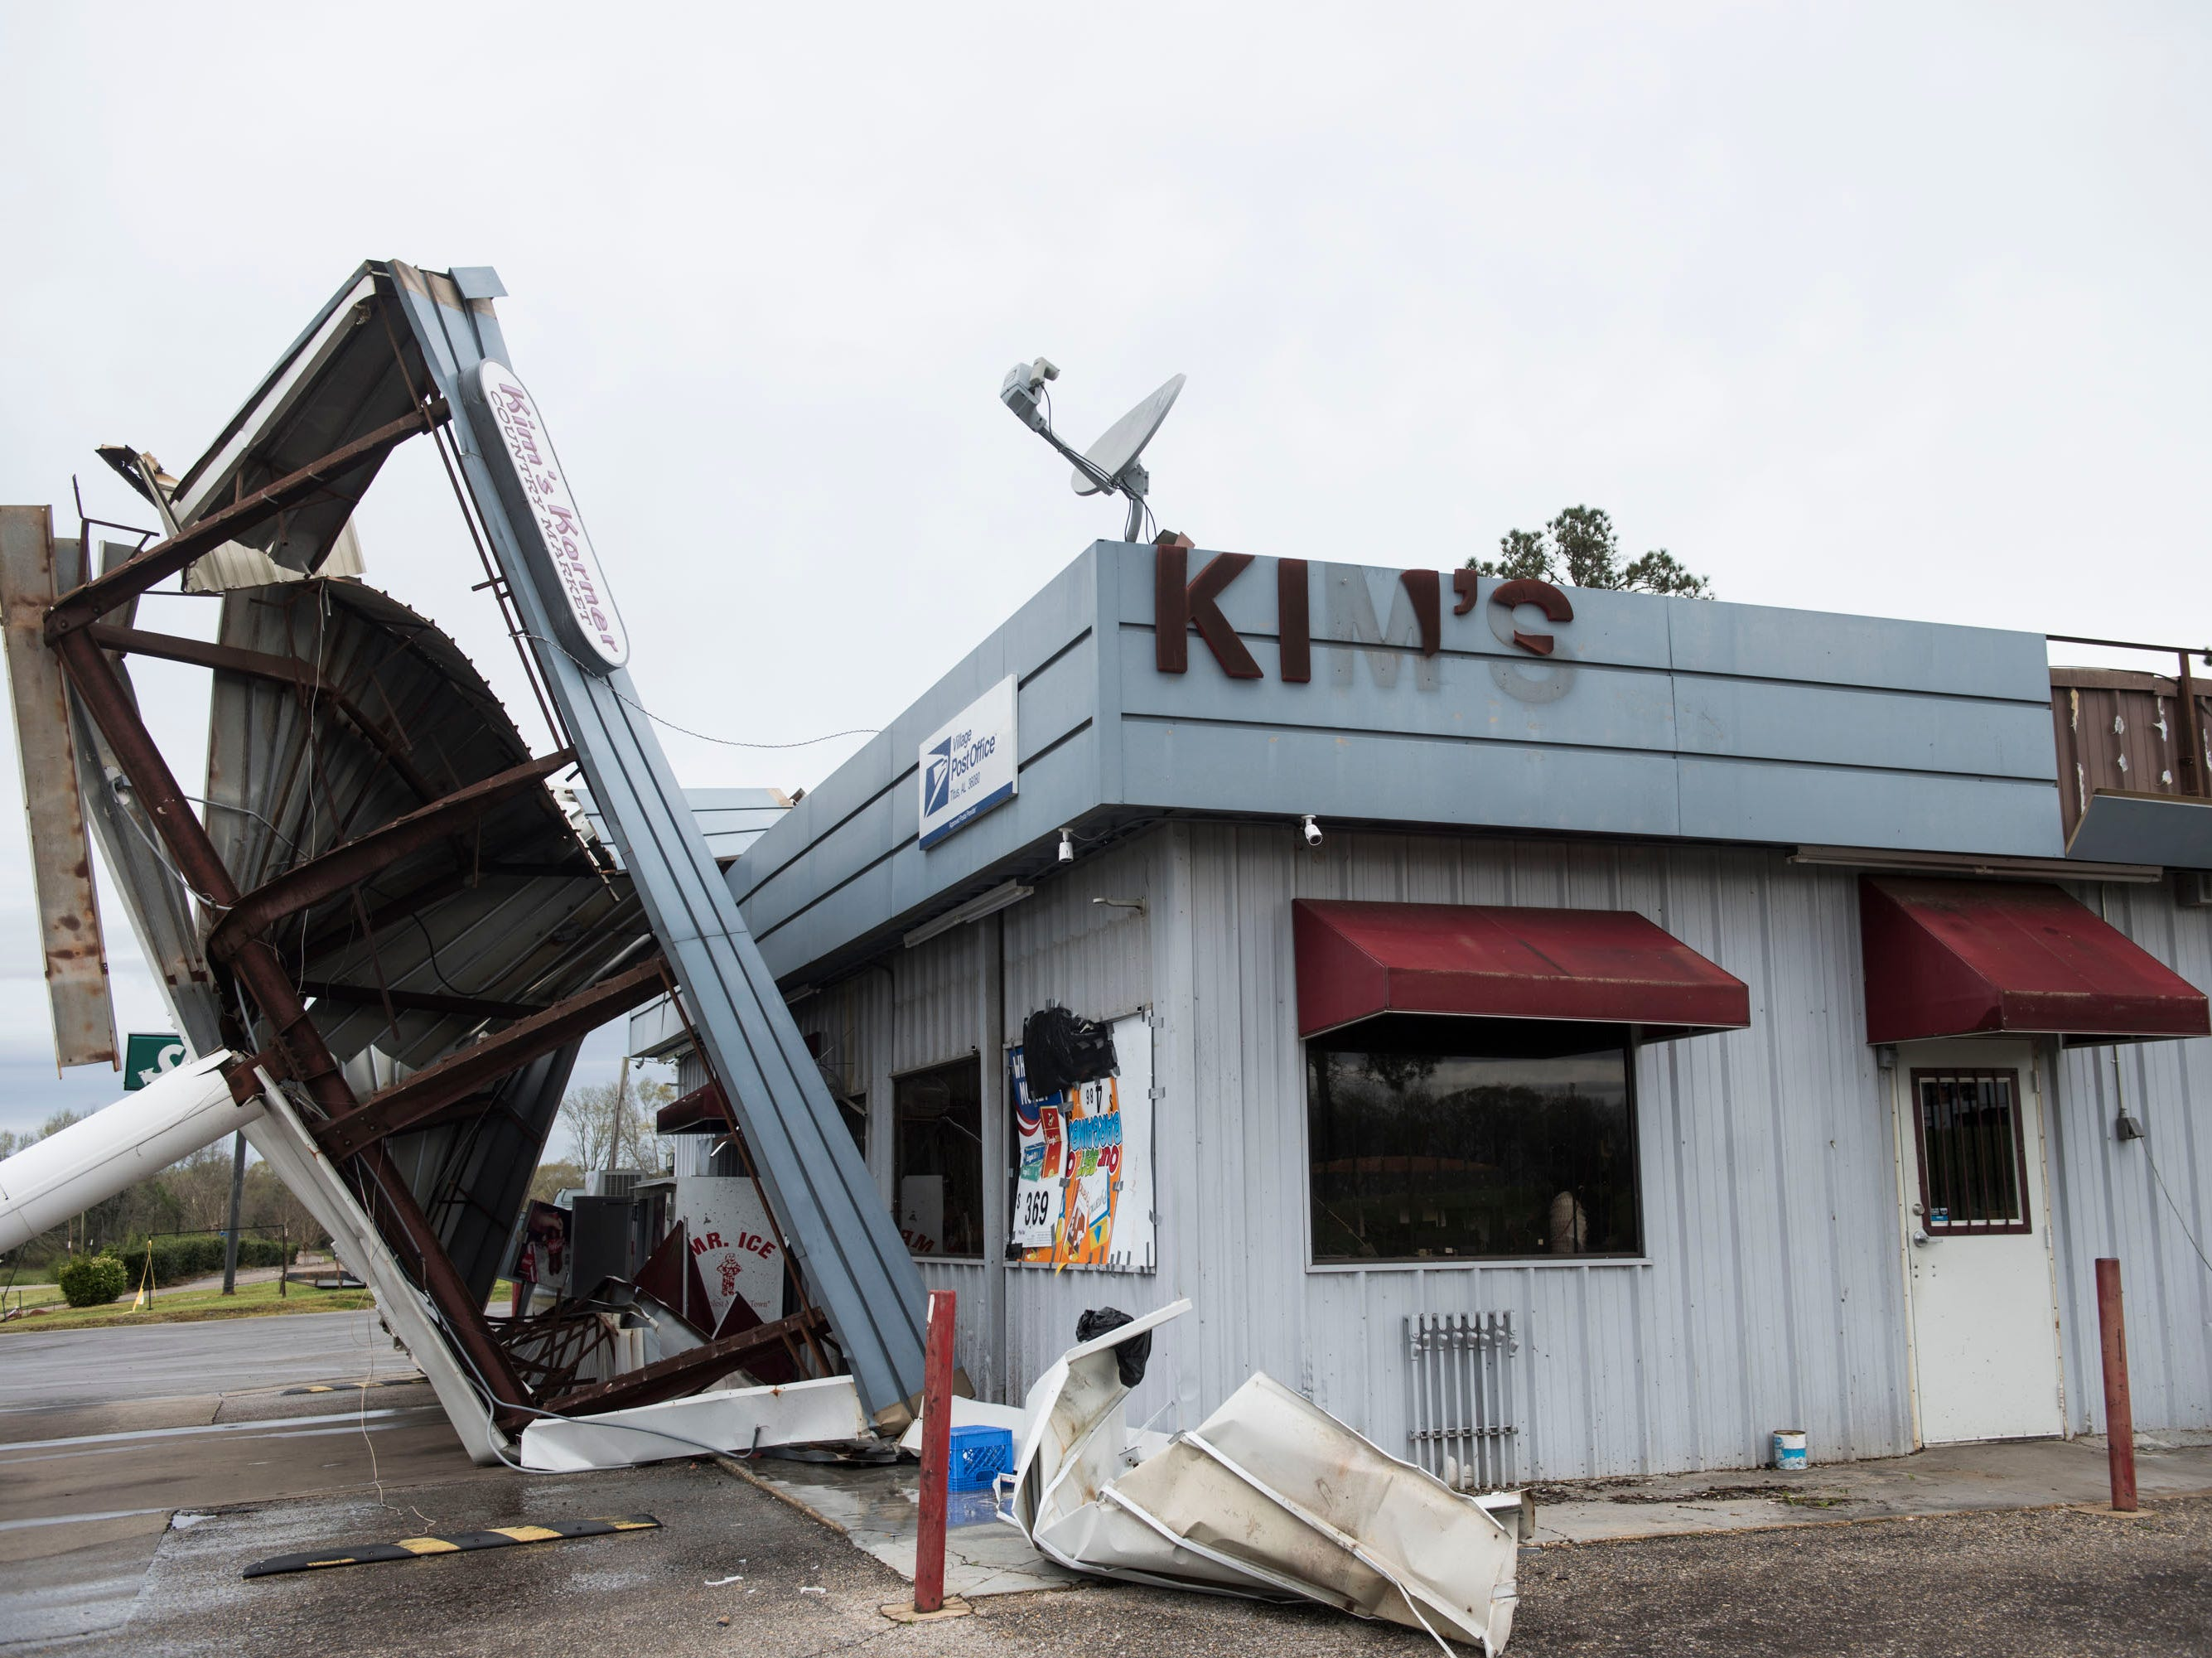 The damage at Kim's Korner gas station after a Tornado hit in Titus, Ala., on Friday, March 15, 2019.